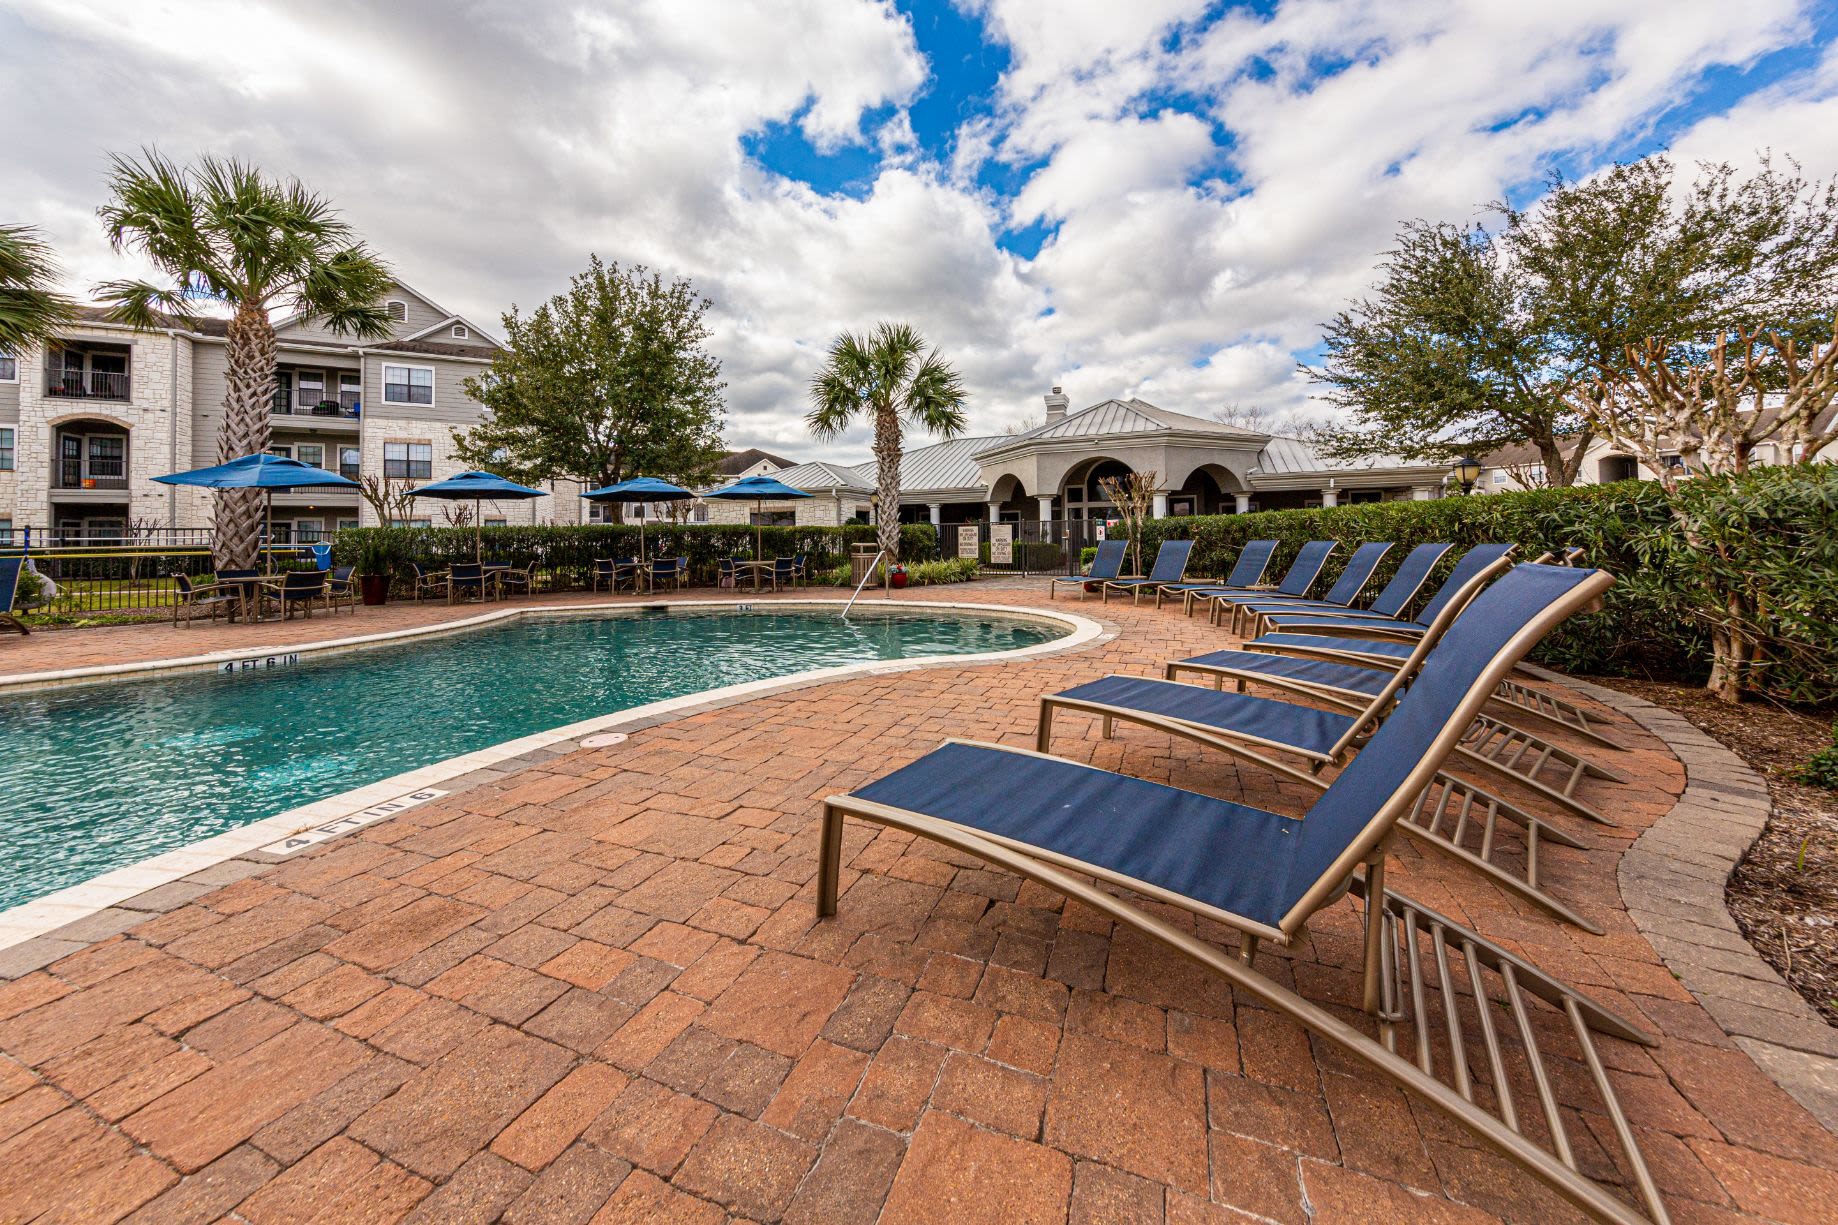 Sun chairs next to pool at Marquis Grand Lakes in Richmond, Texas